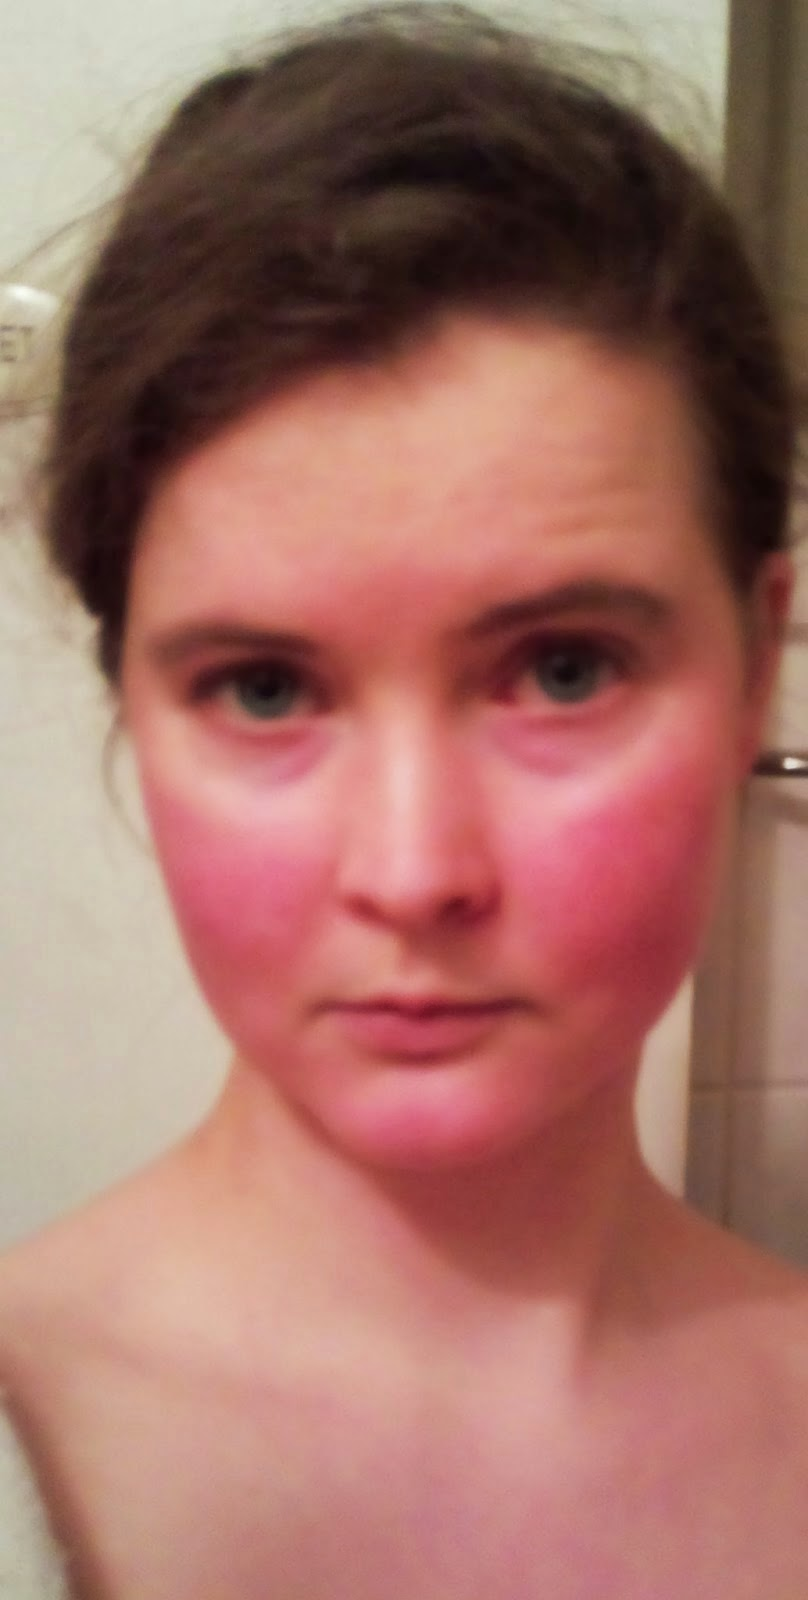 On Burning And Skin Red Face